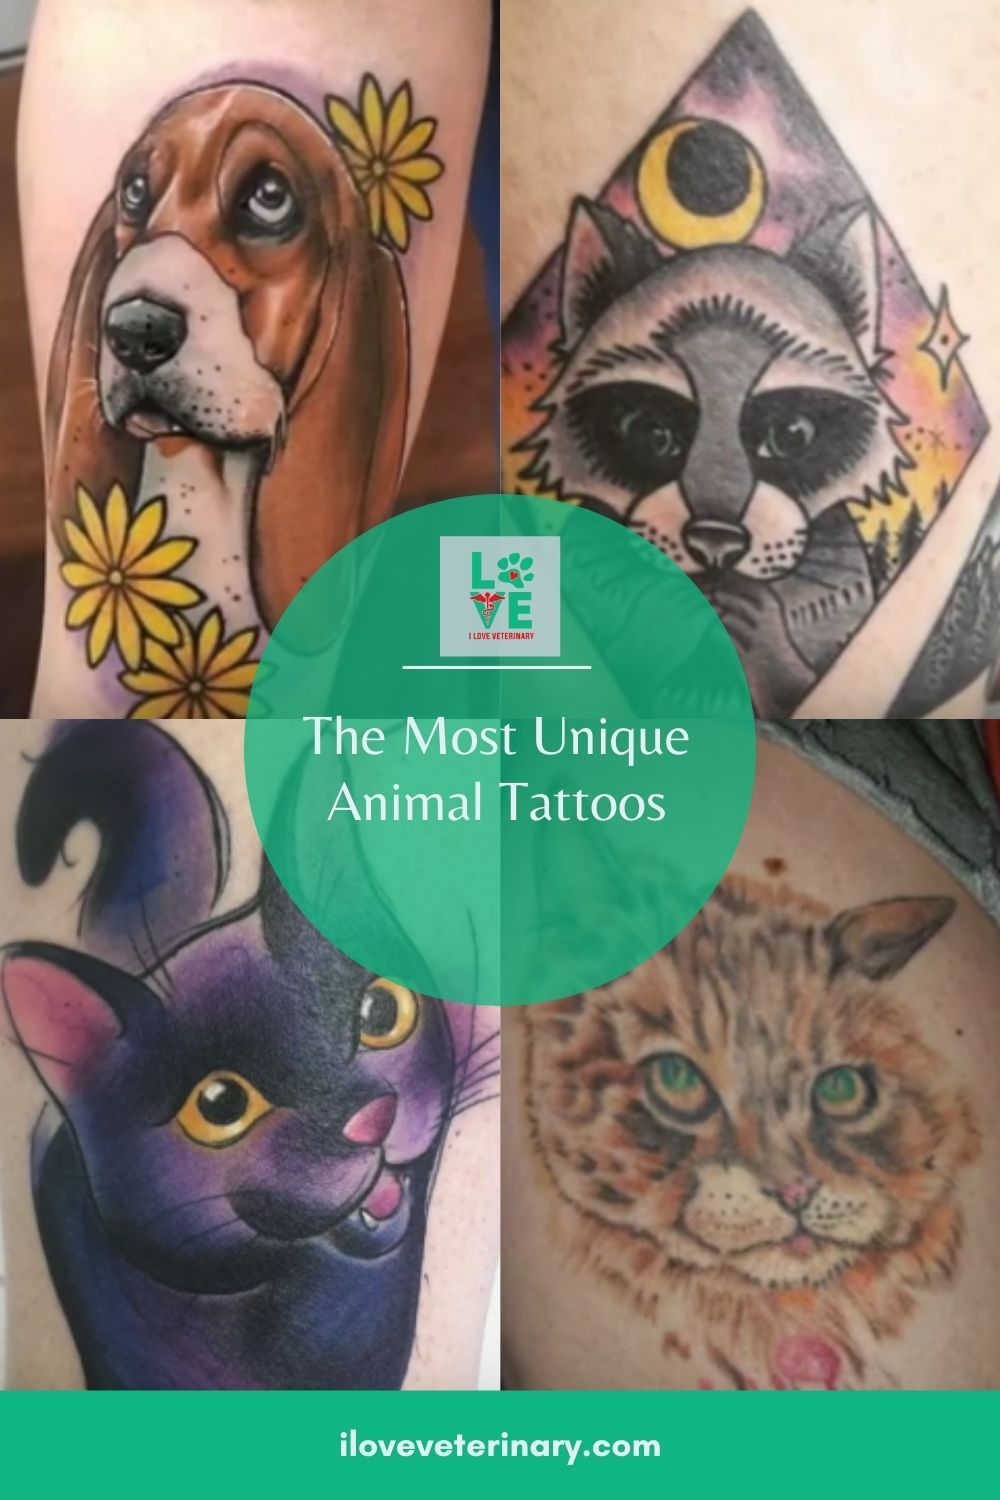 Do You Have An Animal Related Tattoo We Asked Our Facebook Followers To Share Their Tattoos With Our Community An In 2020 Unique Animal Tattoos Animal Tattoos Animals